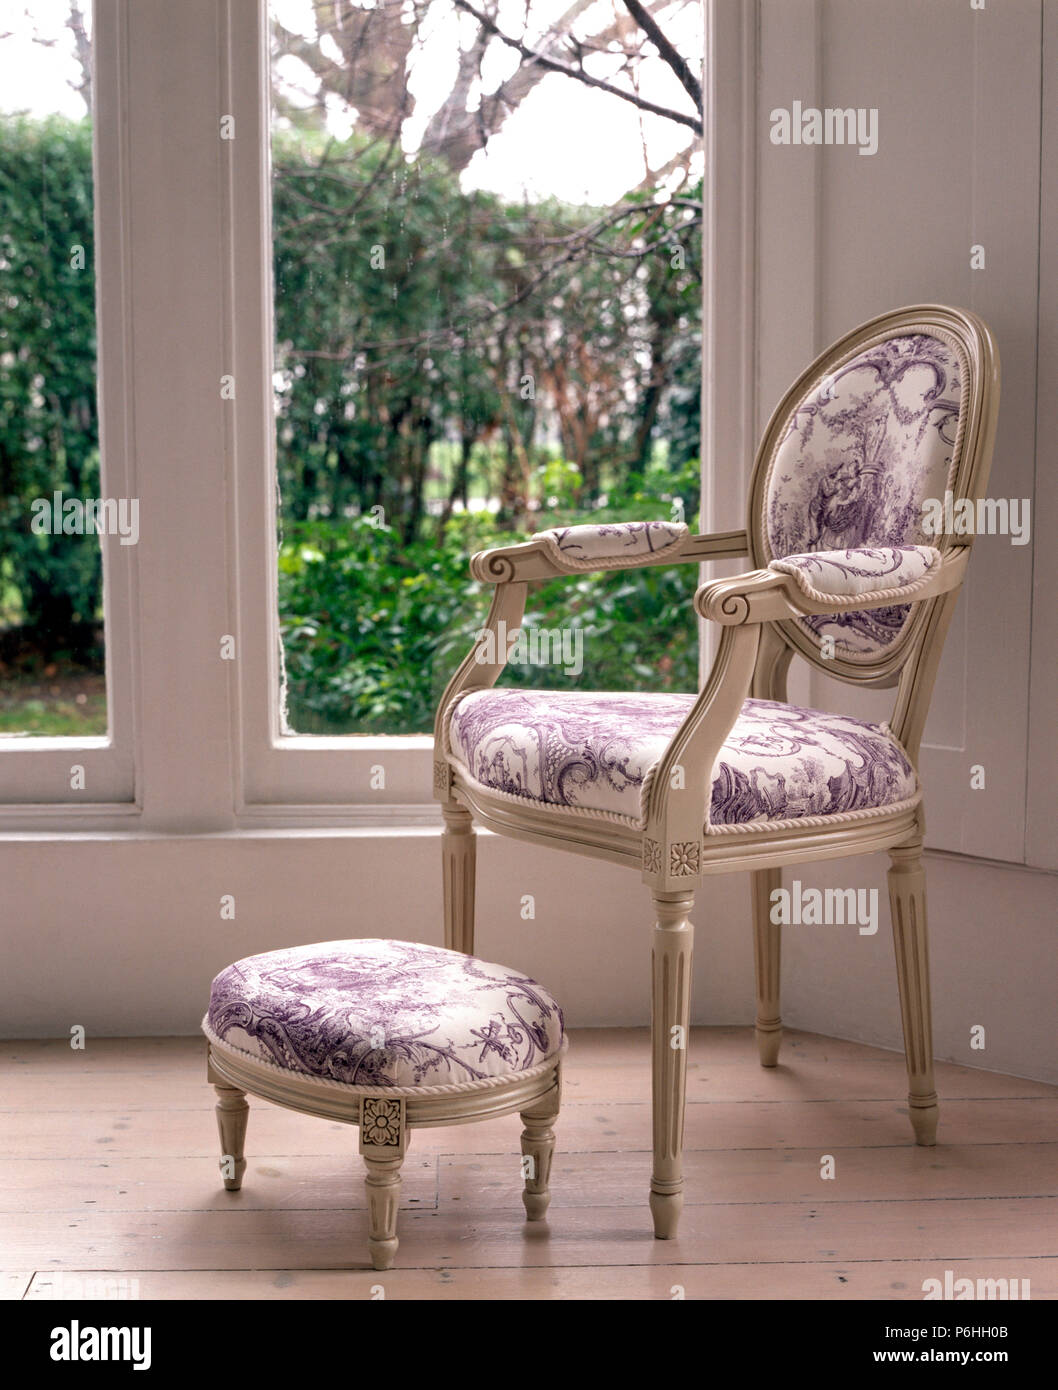 French style chair and footstool upholstered in mauve Toile de Jouy fabric in front of a large window - Stock Image